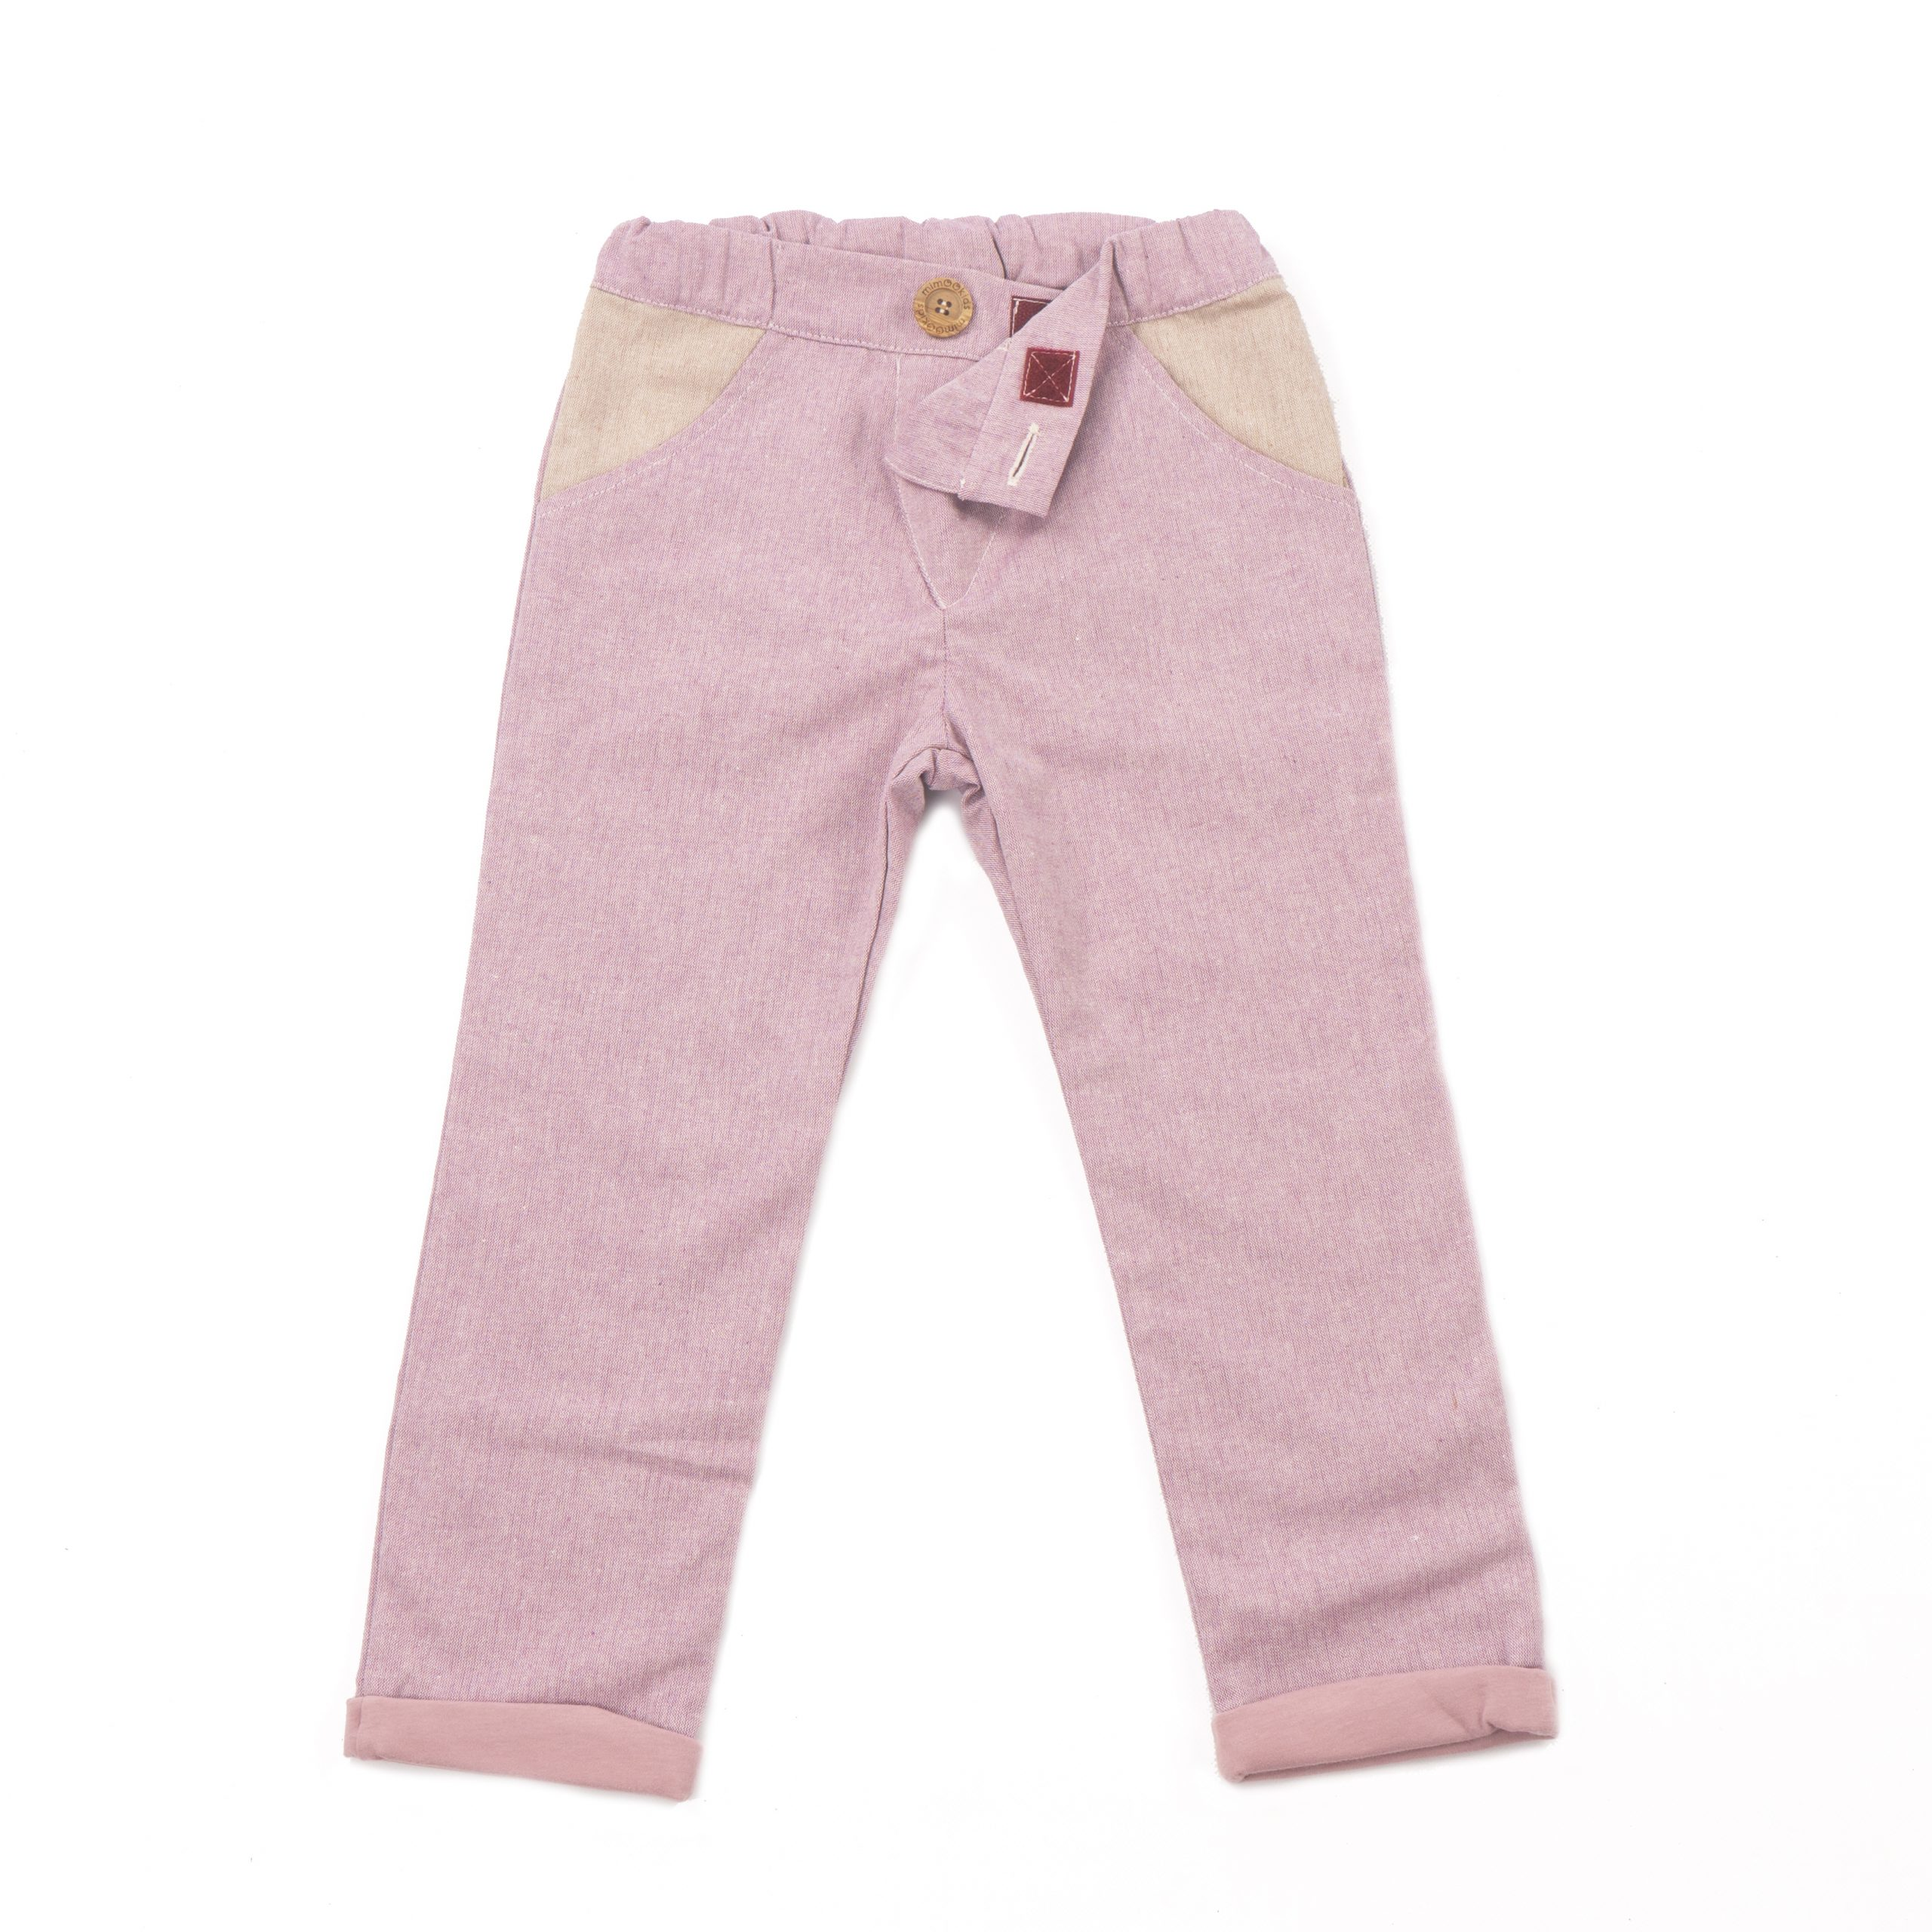 MIMOOKIDS - CLOSE-ME LINED PANTS - ROSE (8)